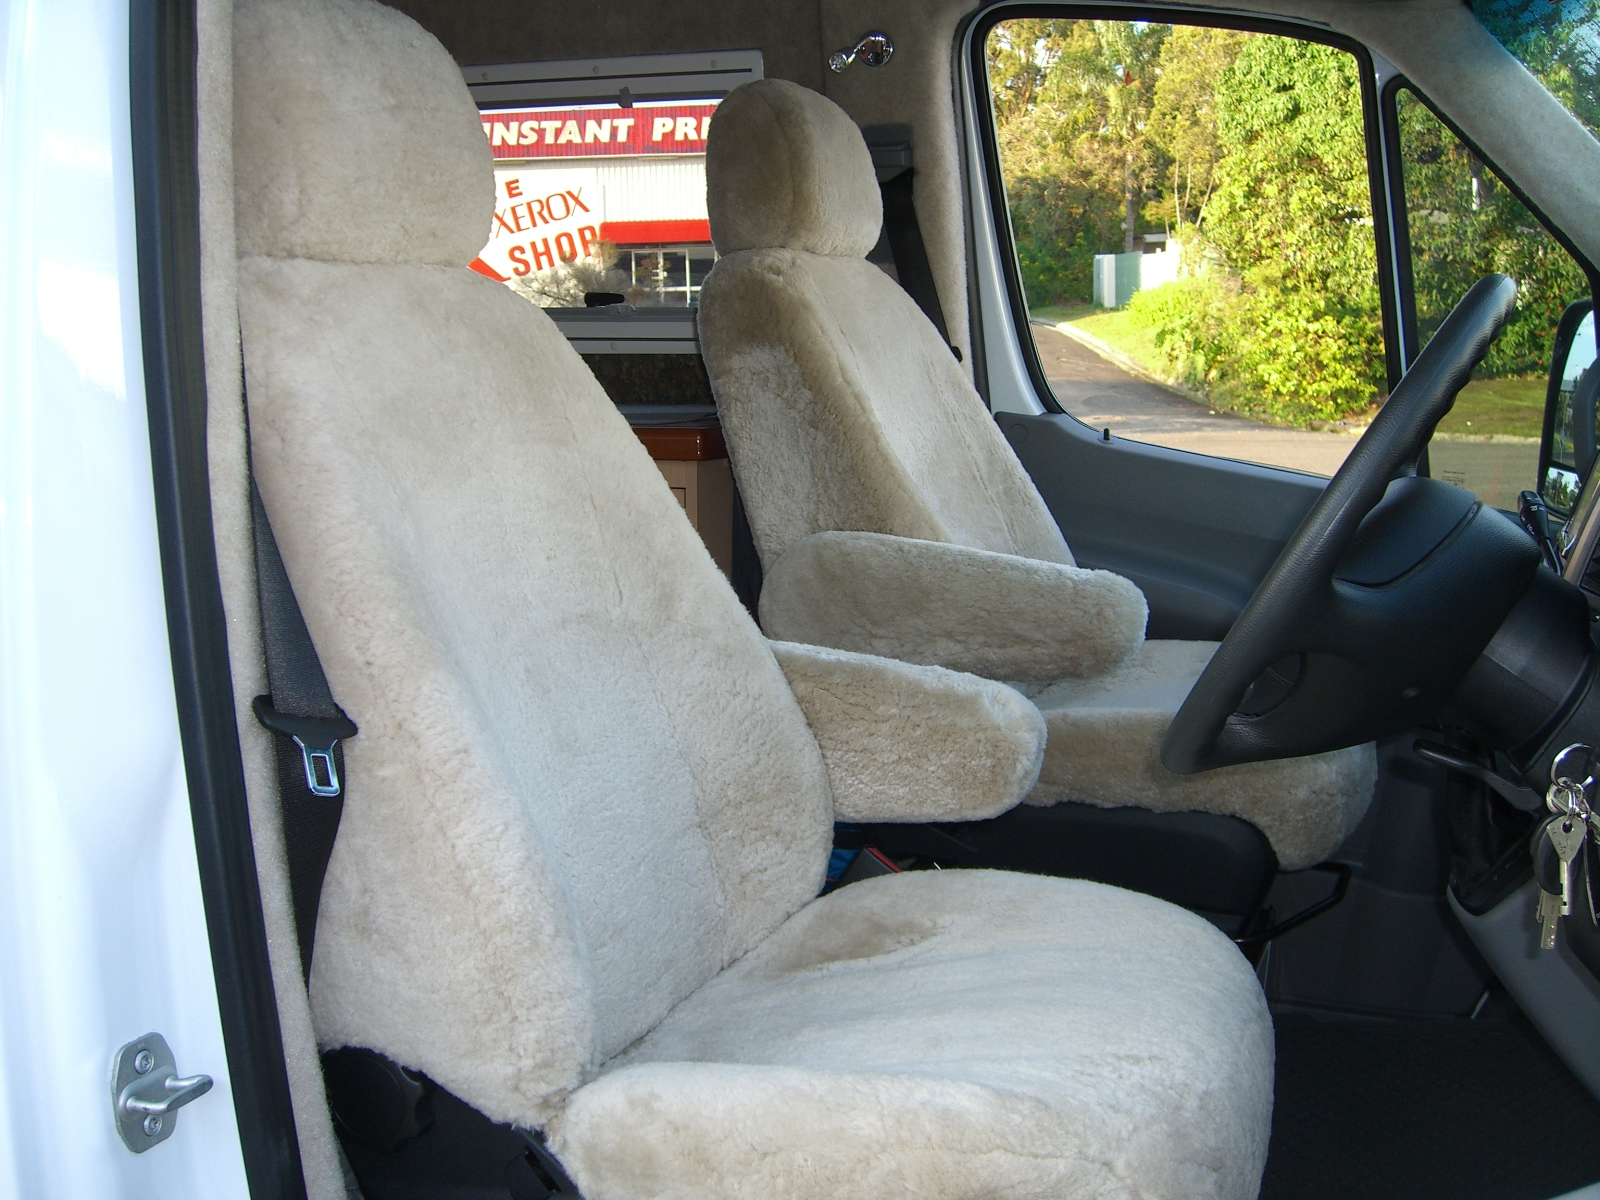 Mercedes Benz Sprinter Motorhome Sheepskin Seat Covers Maroochy Car Sound